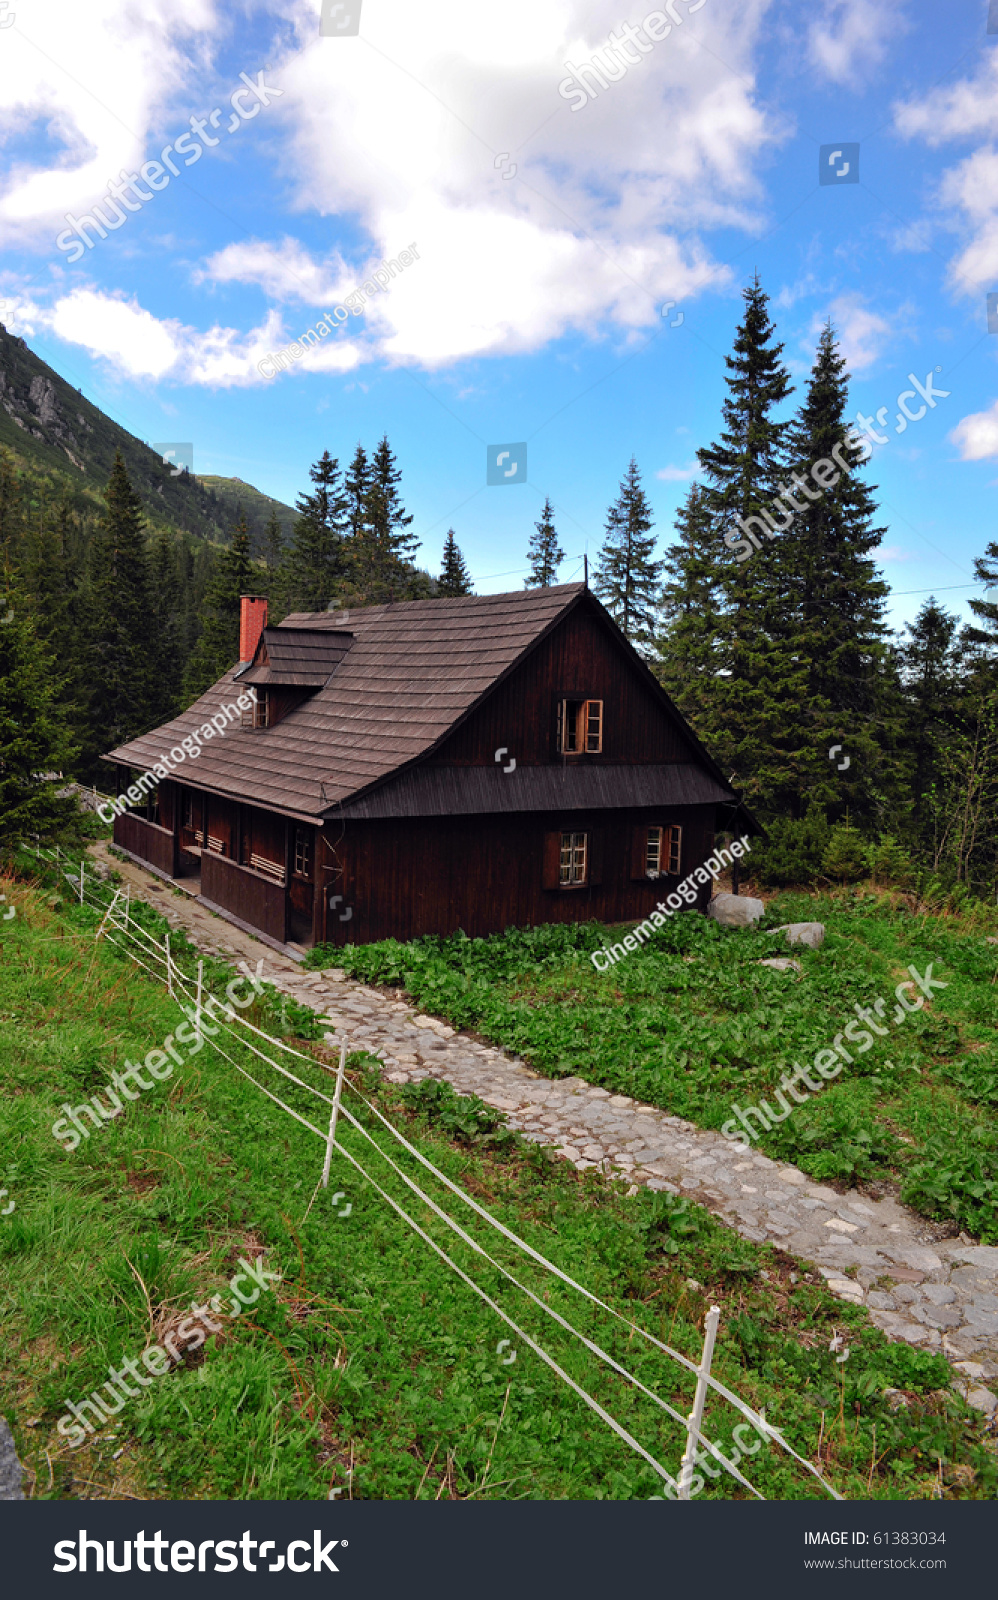 Small house in the mountains stock photo 61383034 - House in the mountains ...